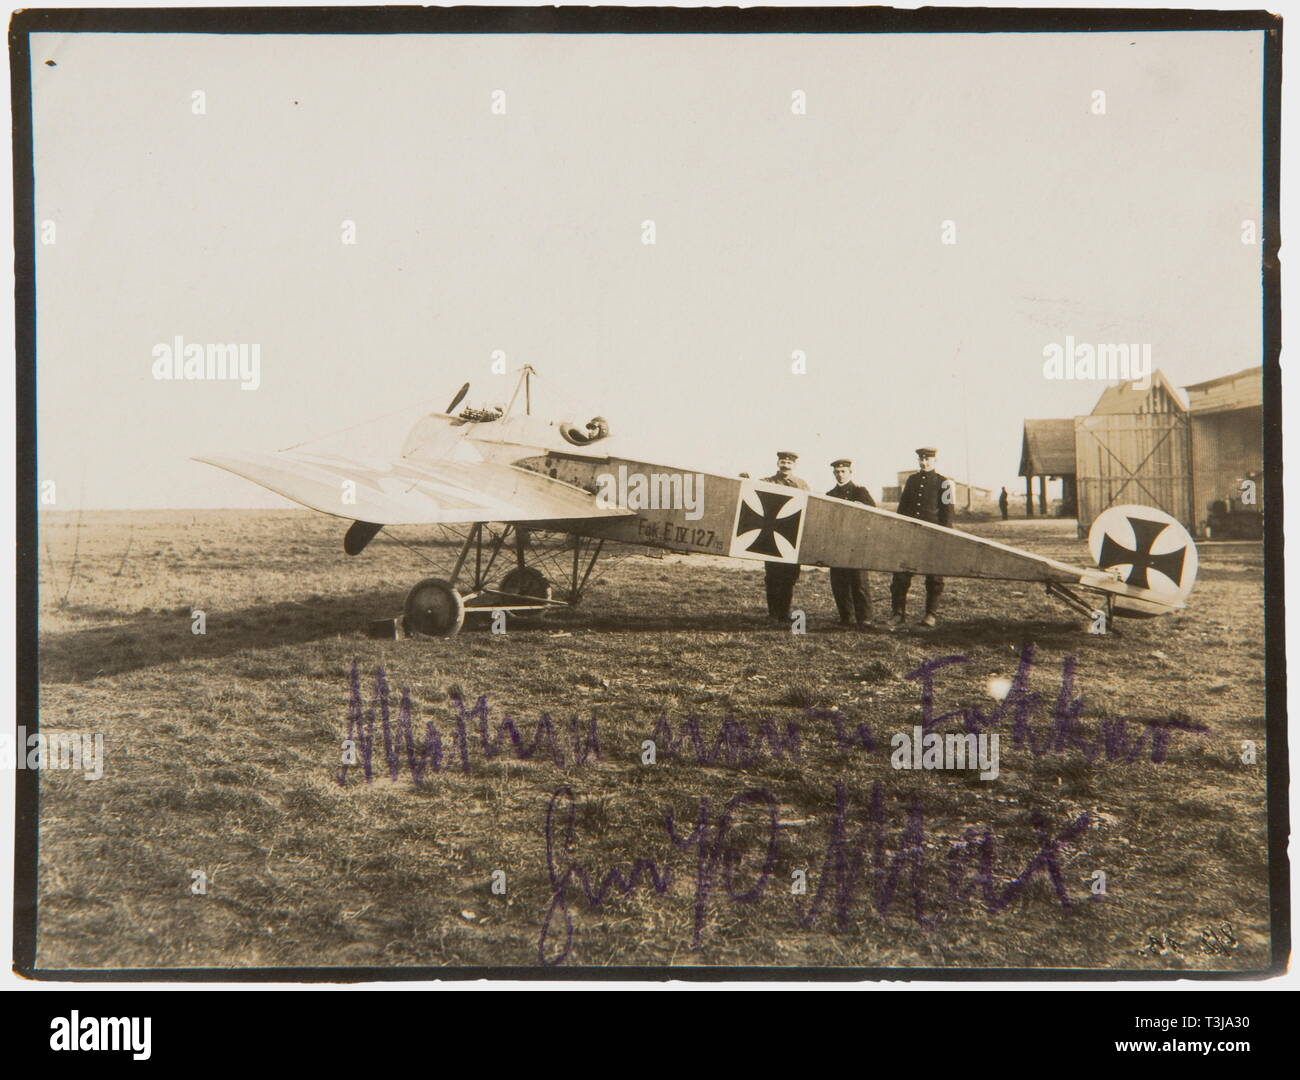 First Lieutenant Max Immelmann (1890 - 1916), a signed photo of his Fokker E IV 127/15 The Fokker with its double MG on a field in front of a hangar with Immelmann in the cockpit (8.8 x 11.4 cm). On the lower edge in purple indelible pencil 'My new Fokker - greetings, Max'. On the back in pencil 'Immelmann in his (2nd) Fokker, 160 h.p., in which he had his fatal accident on 18th June.' The Fokker E IV was developed in 1915, but only came into use at the front in April 1916, the delay was due to a faulty MG synchronising gear. Immelmann however di, Additional-Rights-Clearance-Info-Not-Available - Stock Image